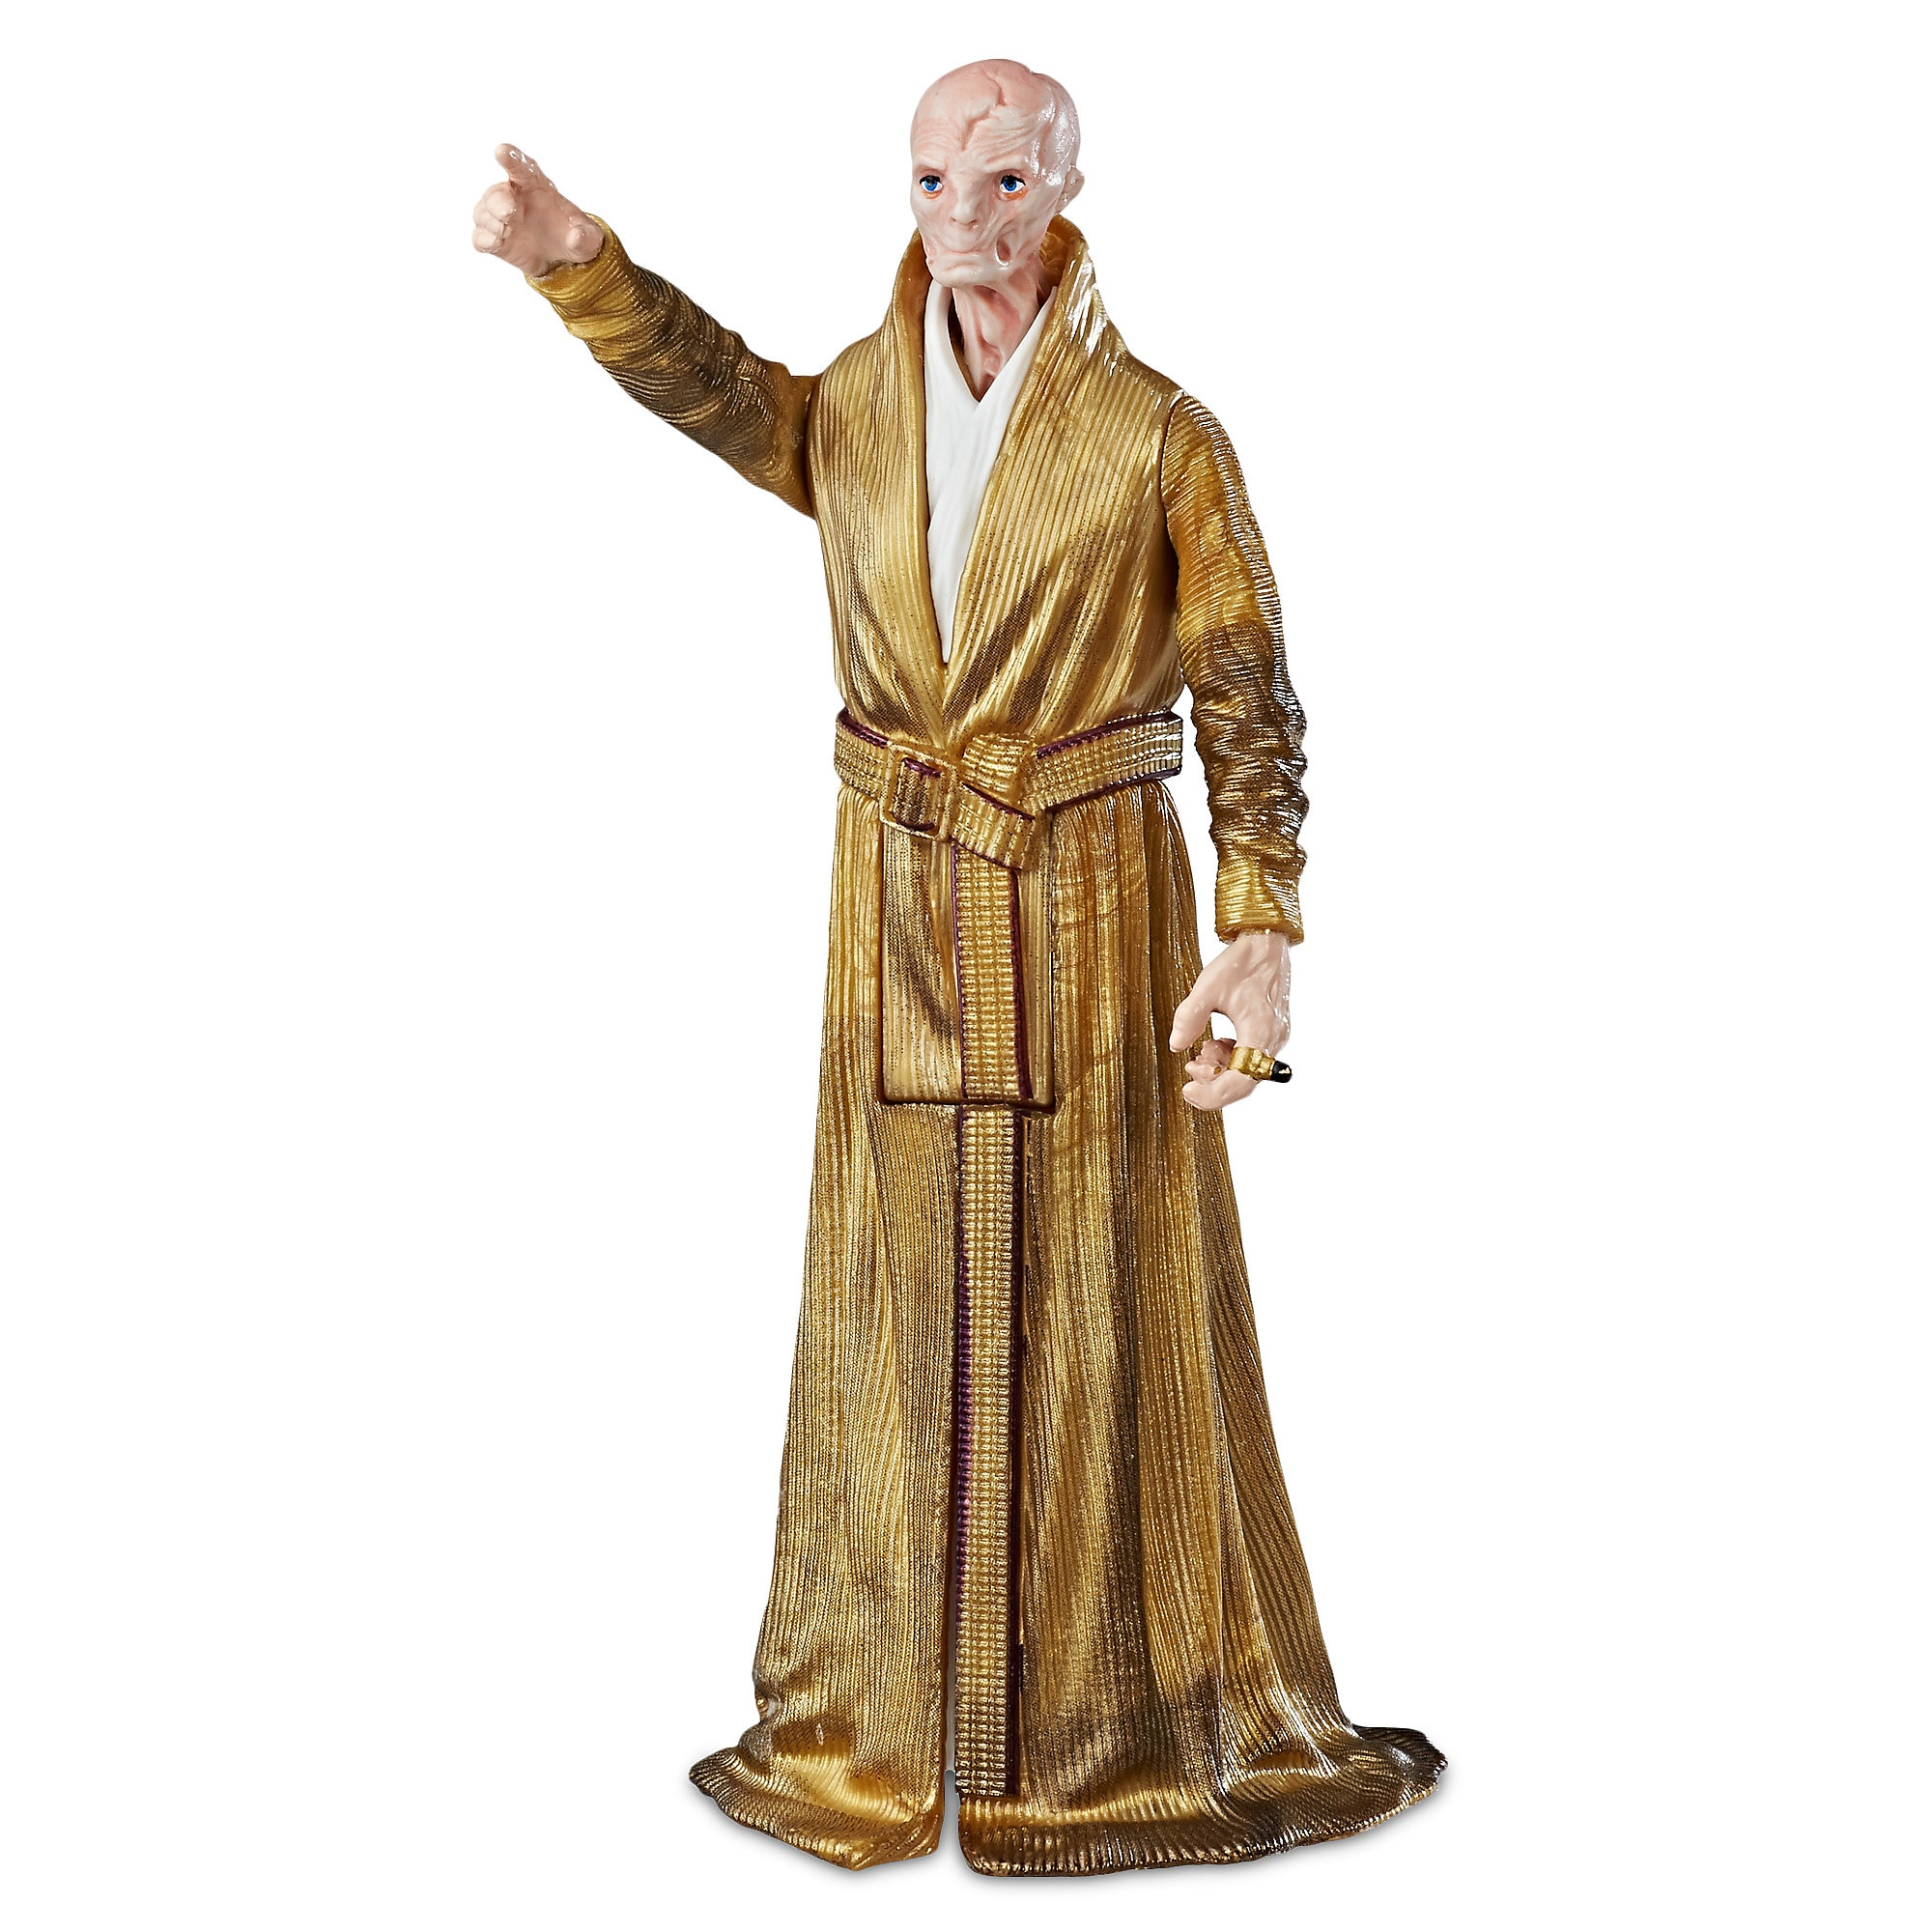 Supreme Leader Snoke Force Link 2.0 Action Figure by Hasbro - Star Wars